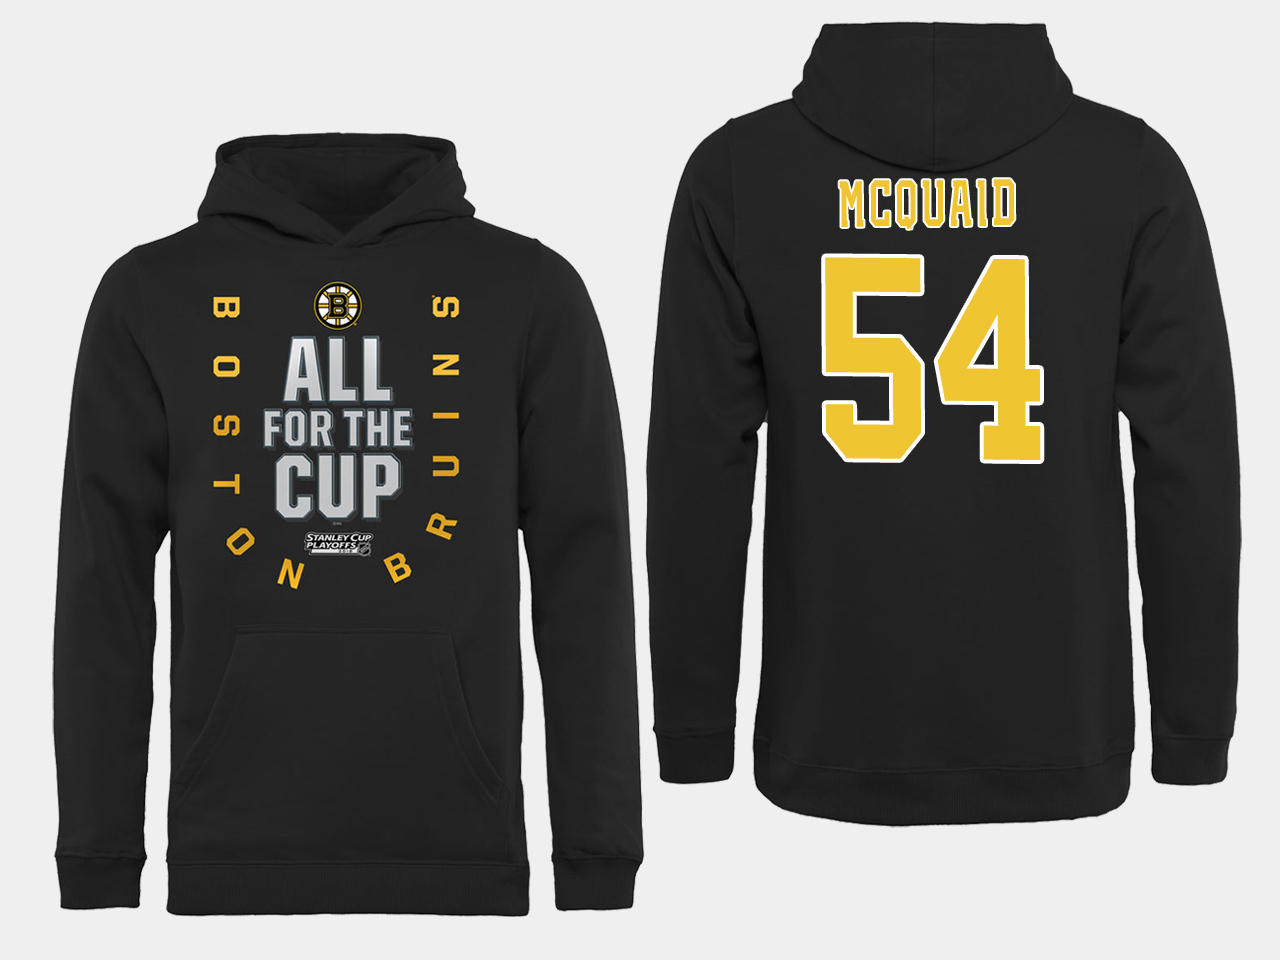 NHL Men Boston Bruins 54 Mcquaid Black All for the Cup Hoodie